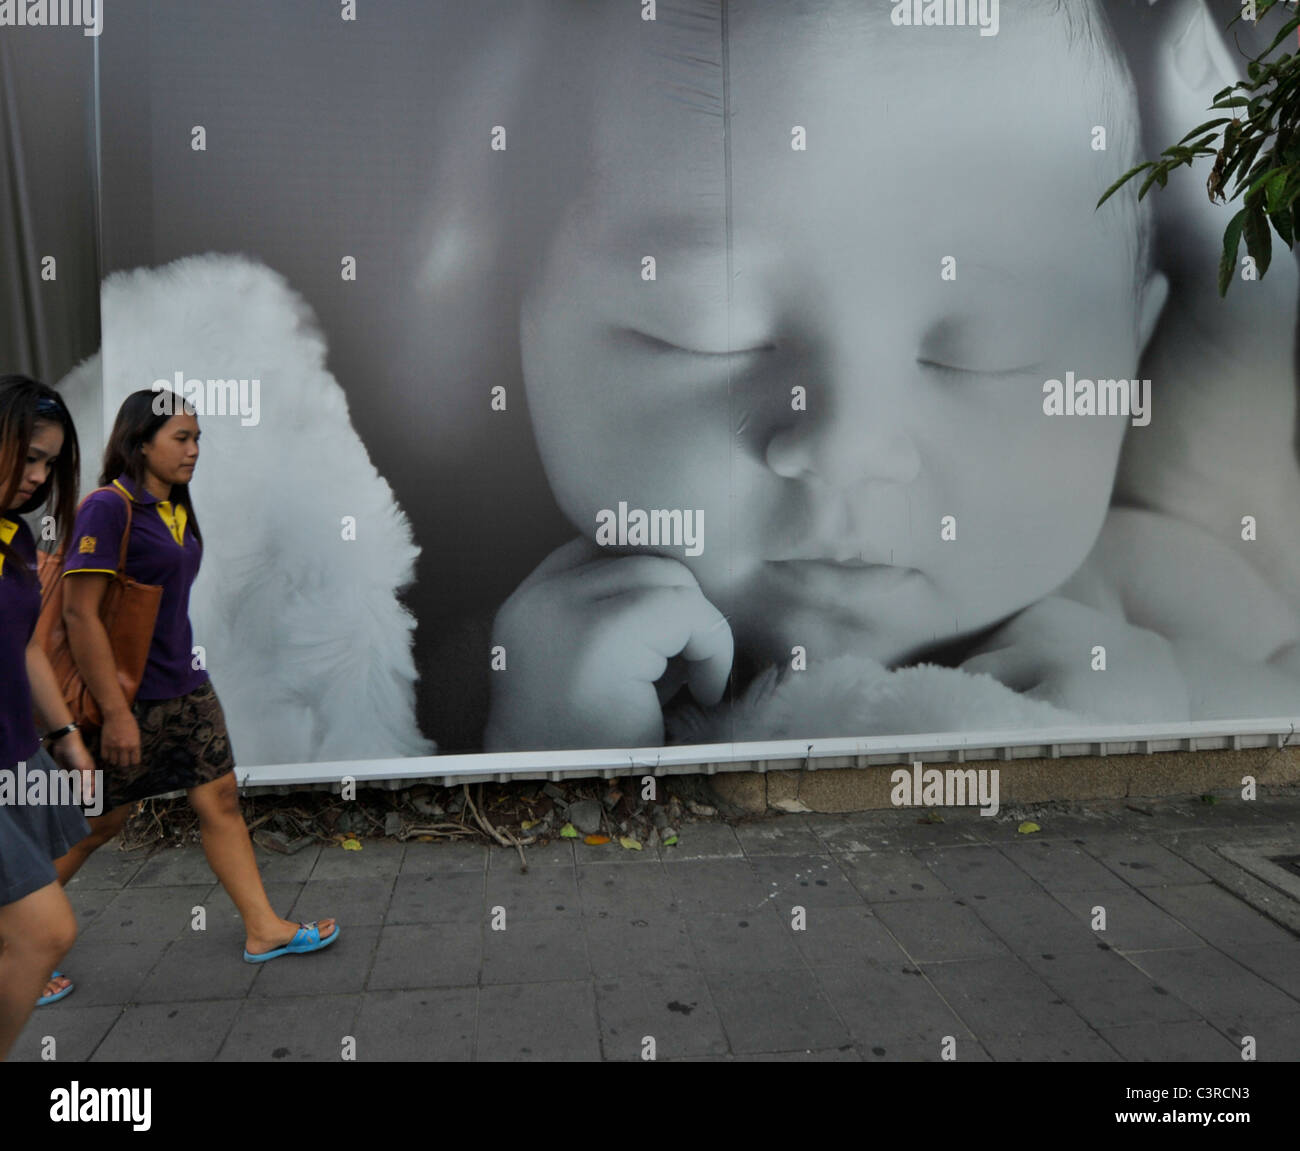 The wall, Bangkok has some weird walls and extraordinary people, Bangkok life, streets of Bangkok, Thailand - Stock Image